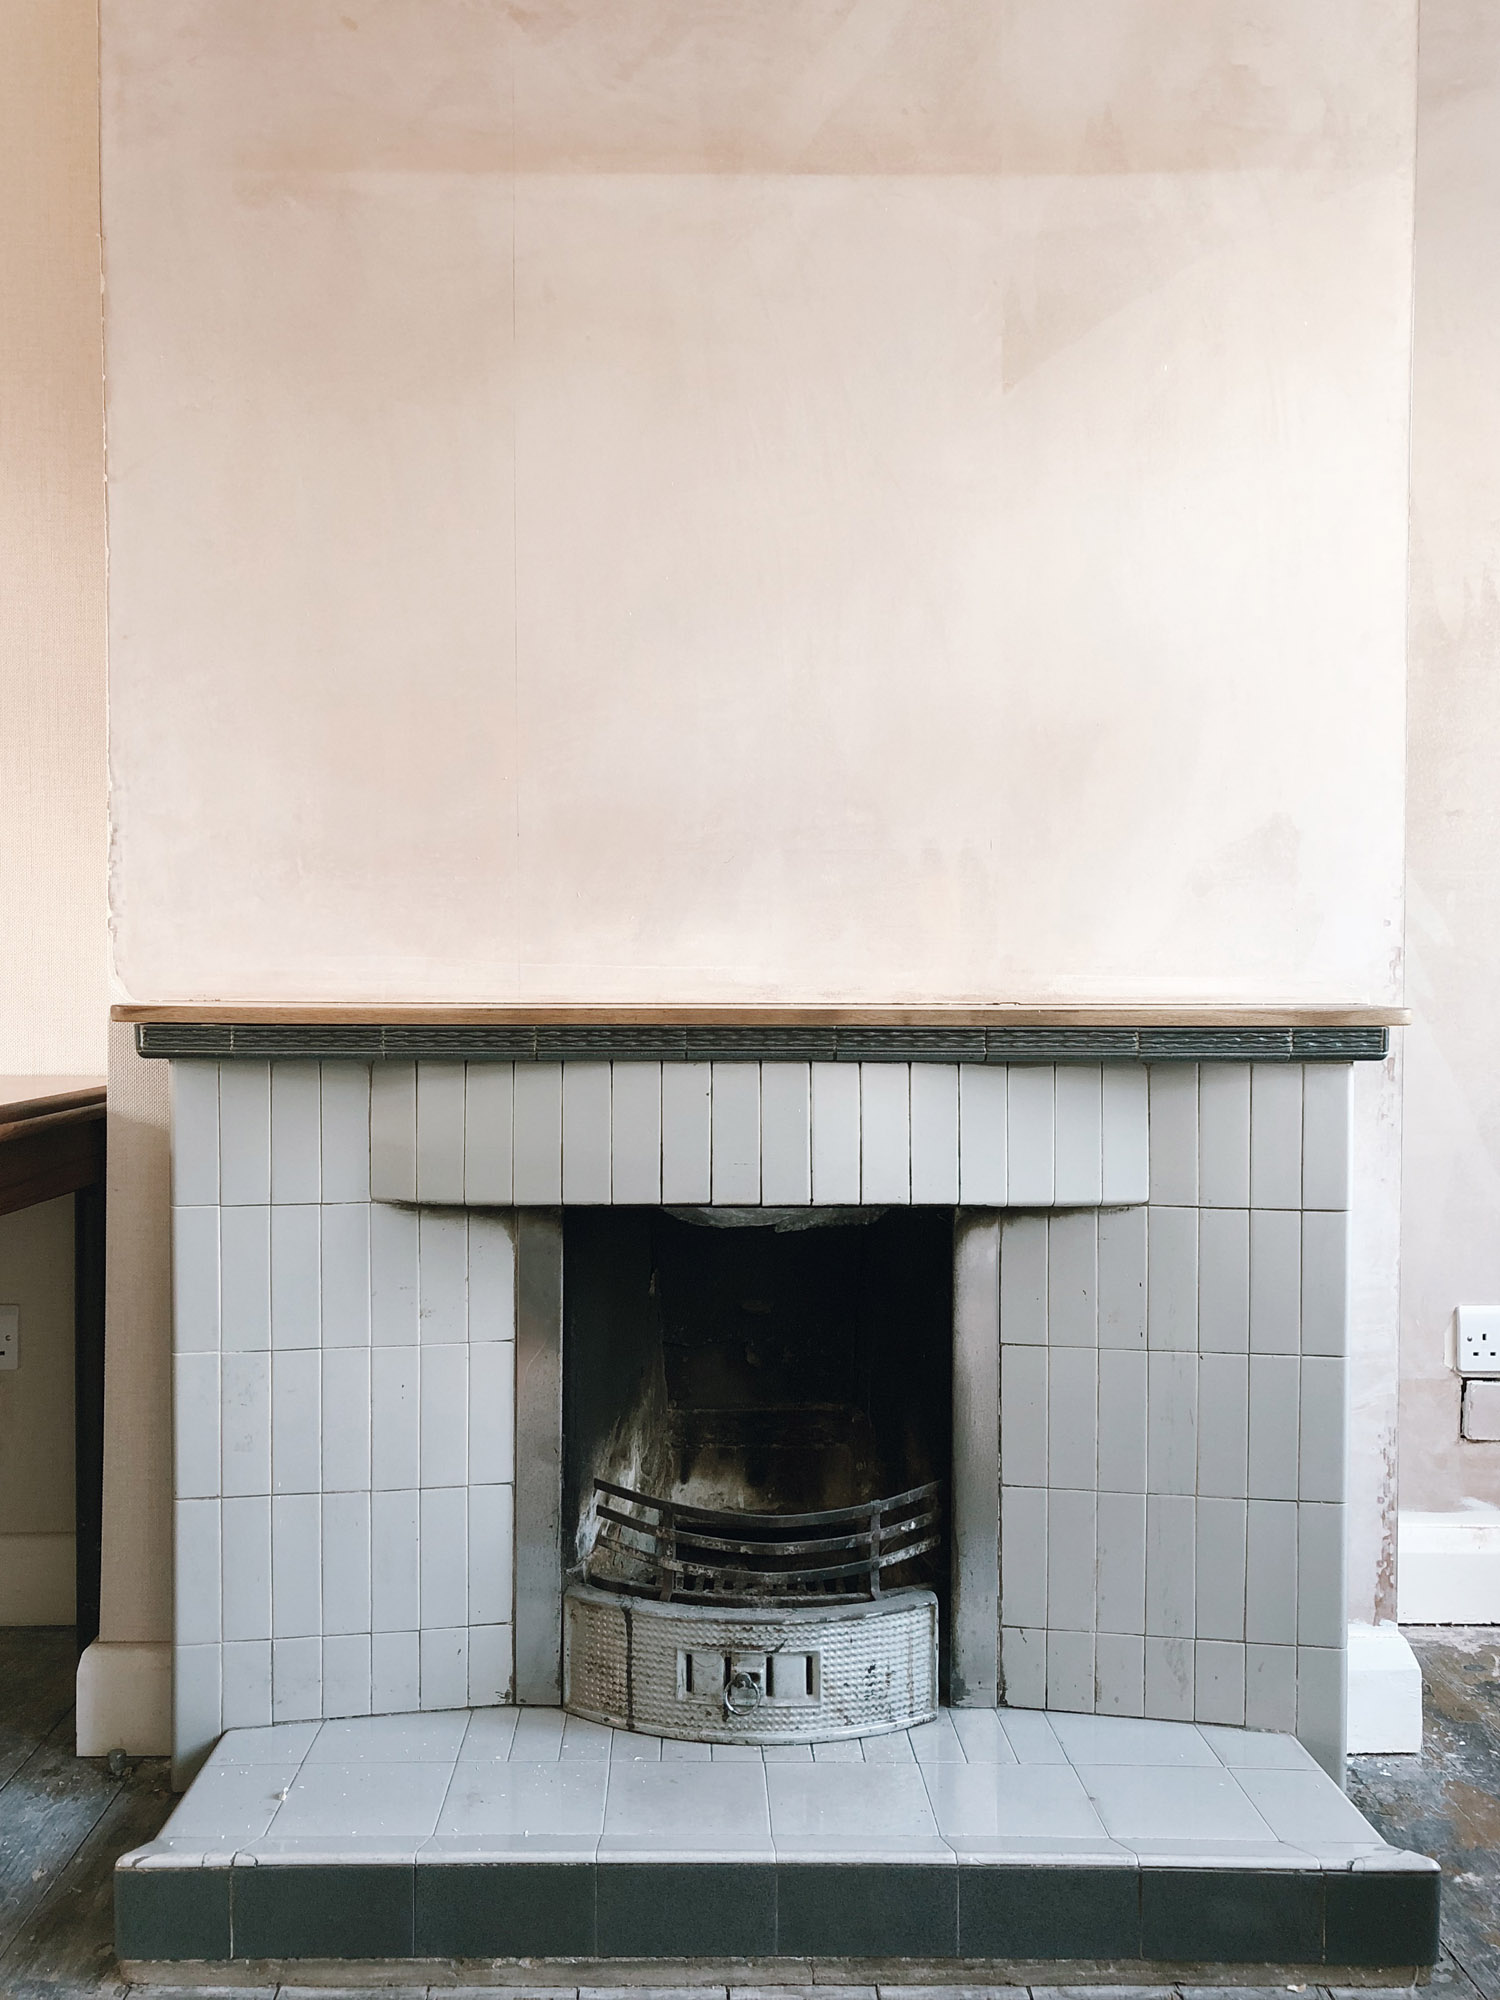 The original 1930s fireplace in our living room before and after we removed it.